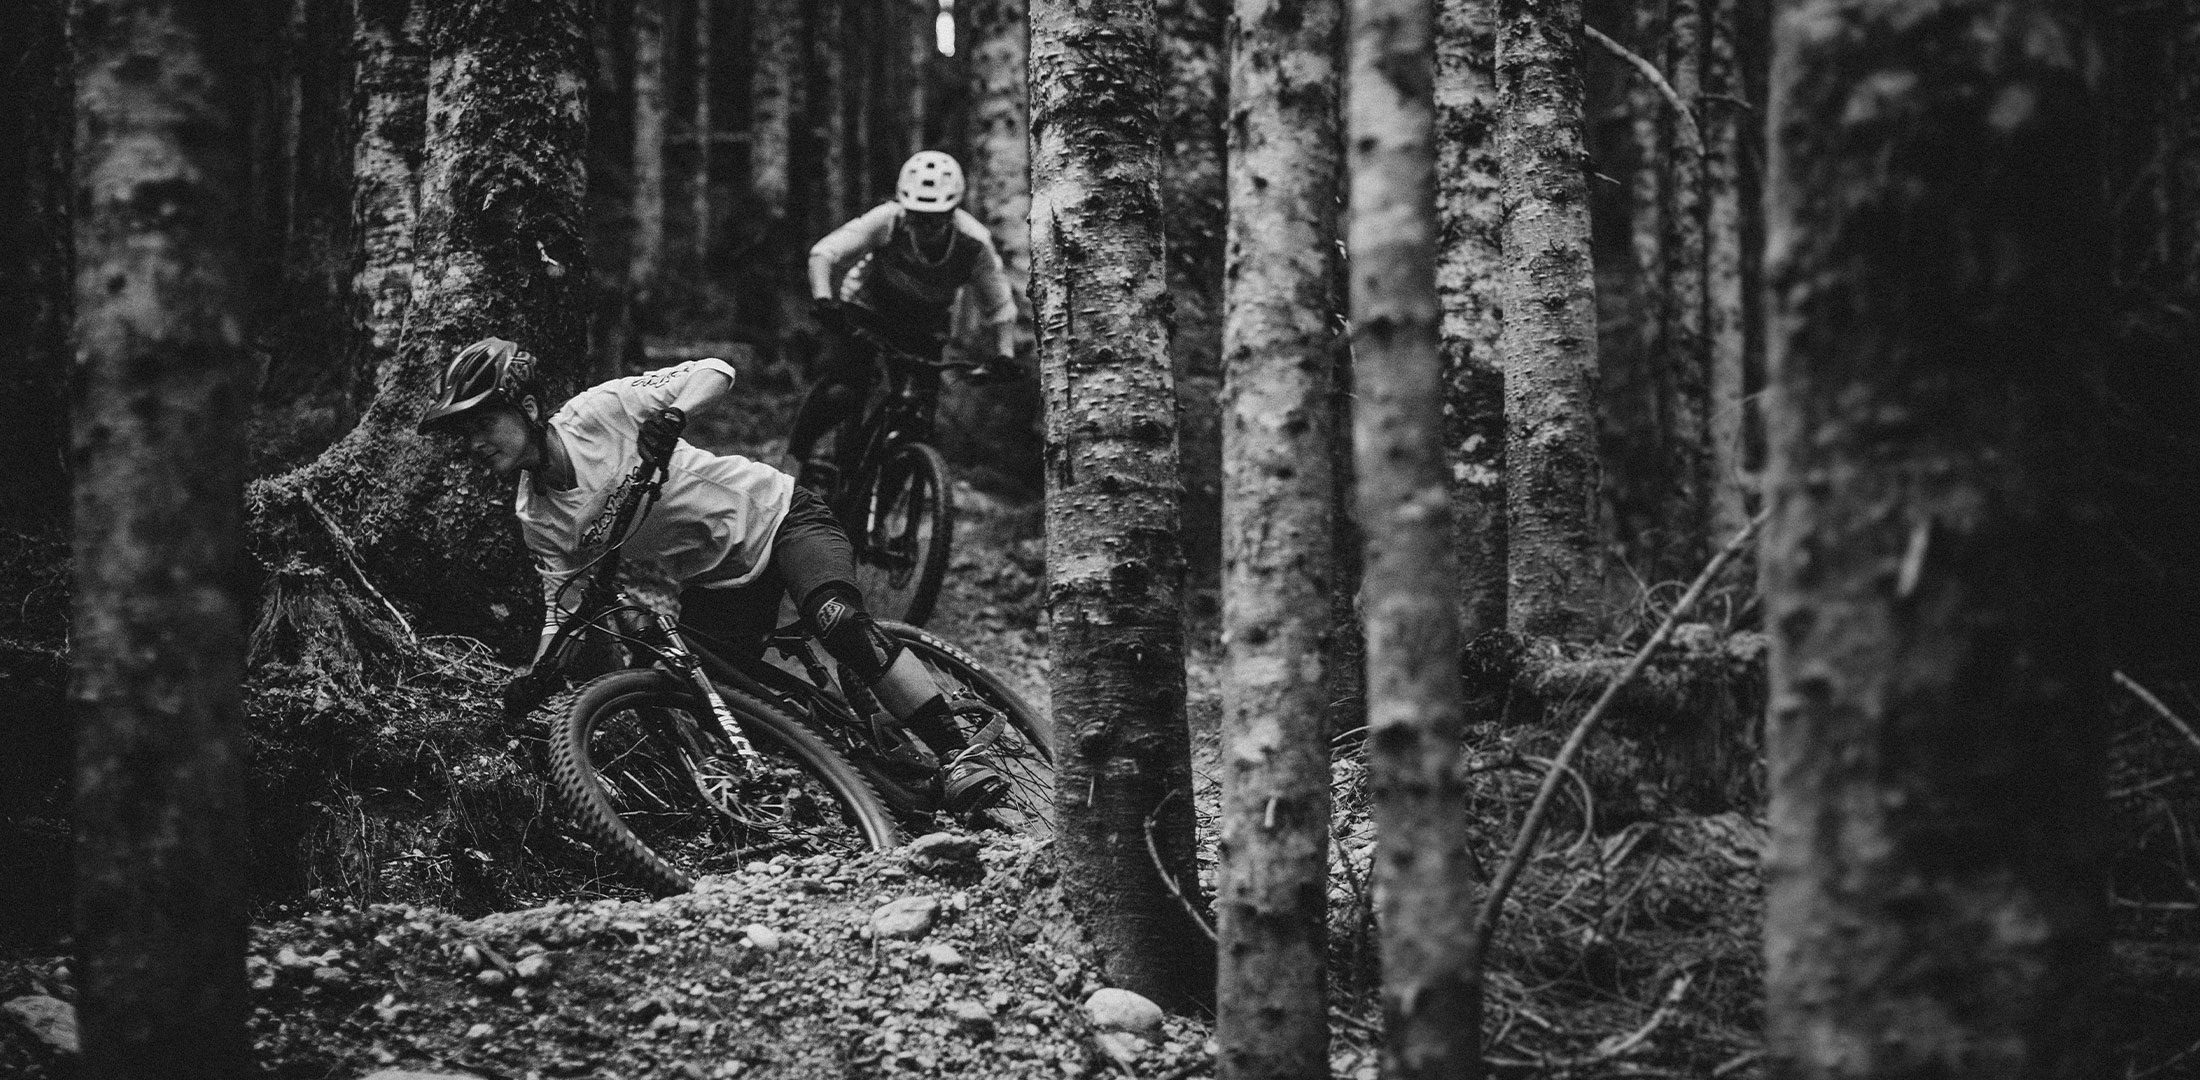 Evil Offering 2021 riding in forest black white